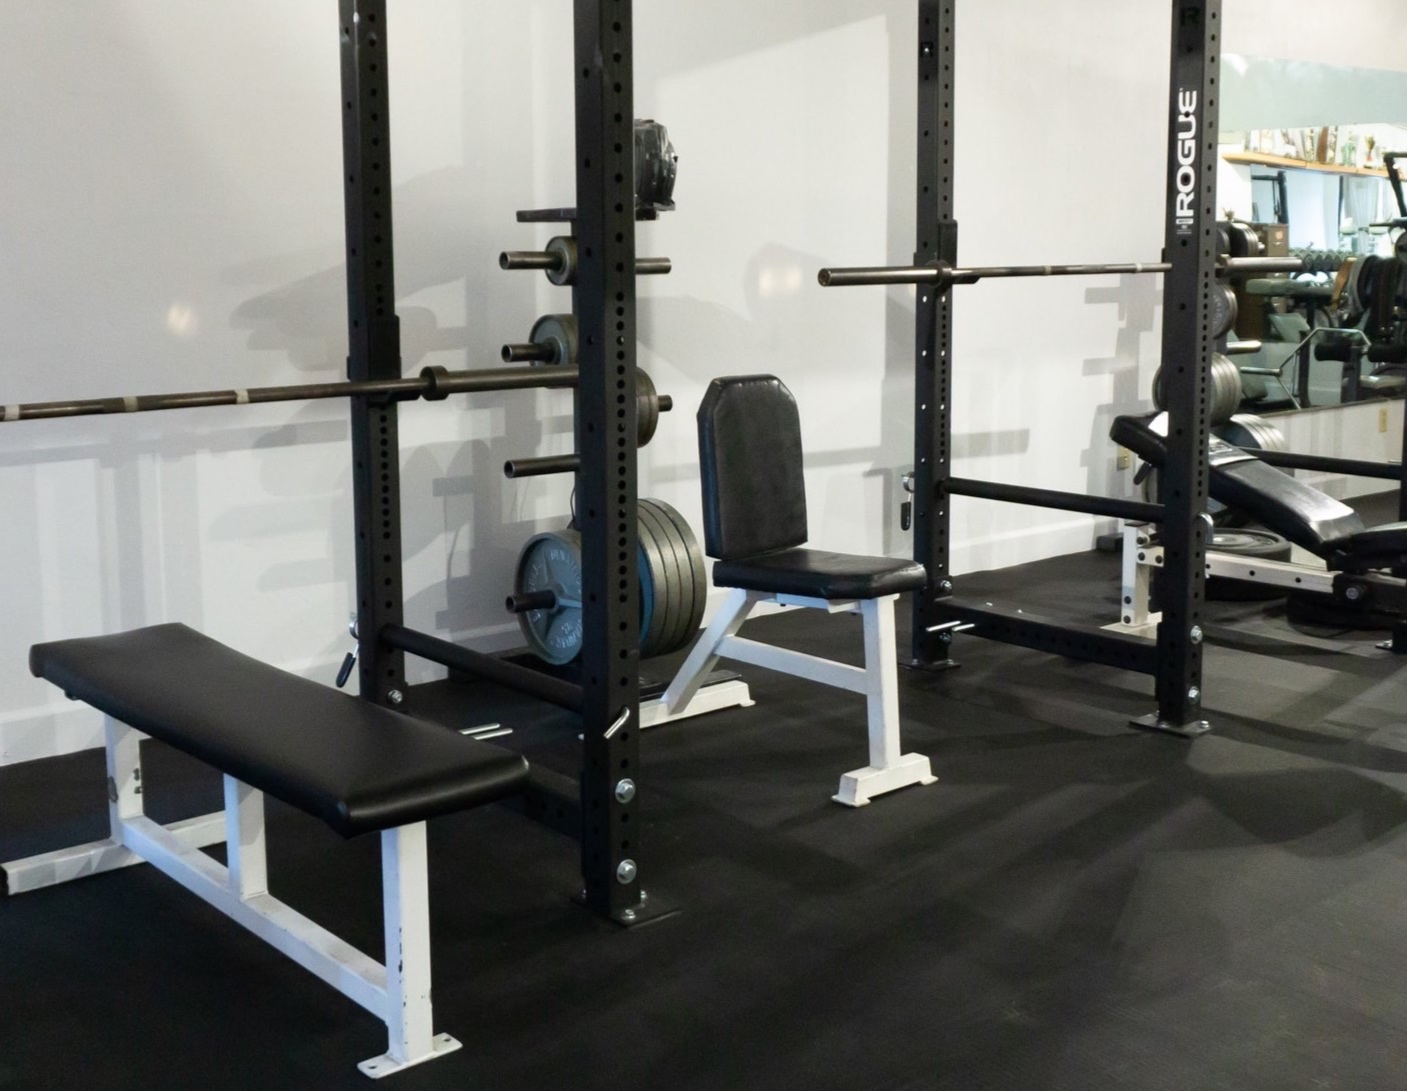 powerform personal training - 5258 College AvenueWe believe in being effective. Two, 30-minute sessions a week of the right lifts in the right form will make you stronger and healthier. Come in for a free introductory session and start fulfilling your goals today.